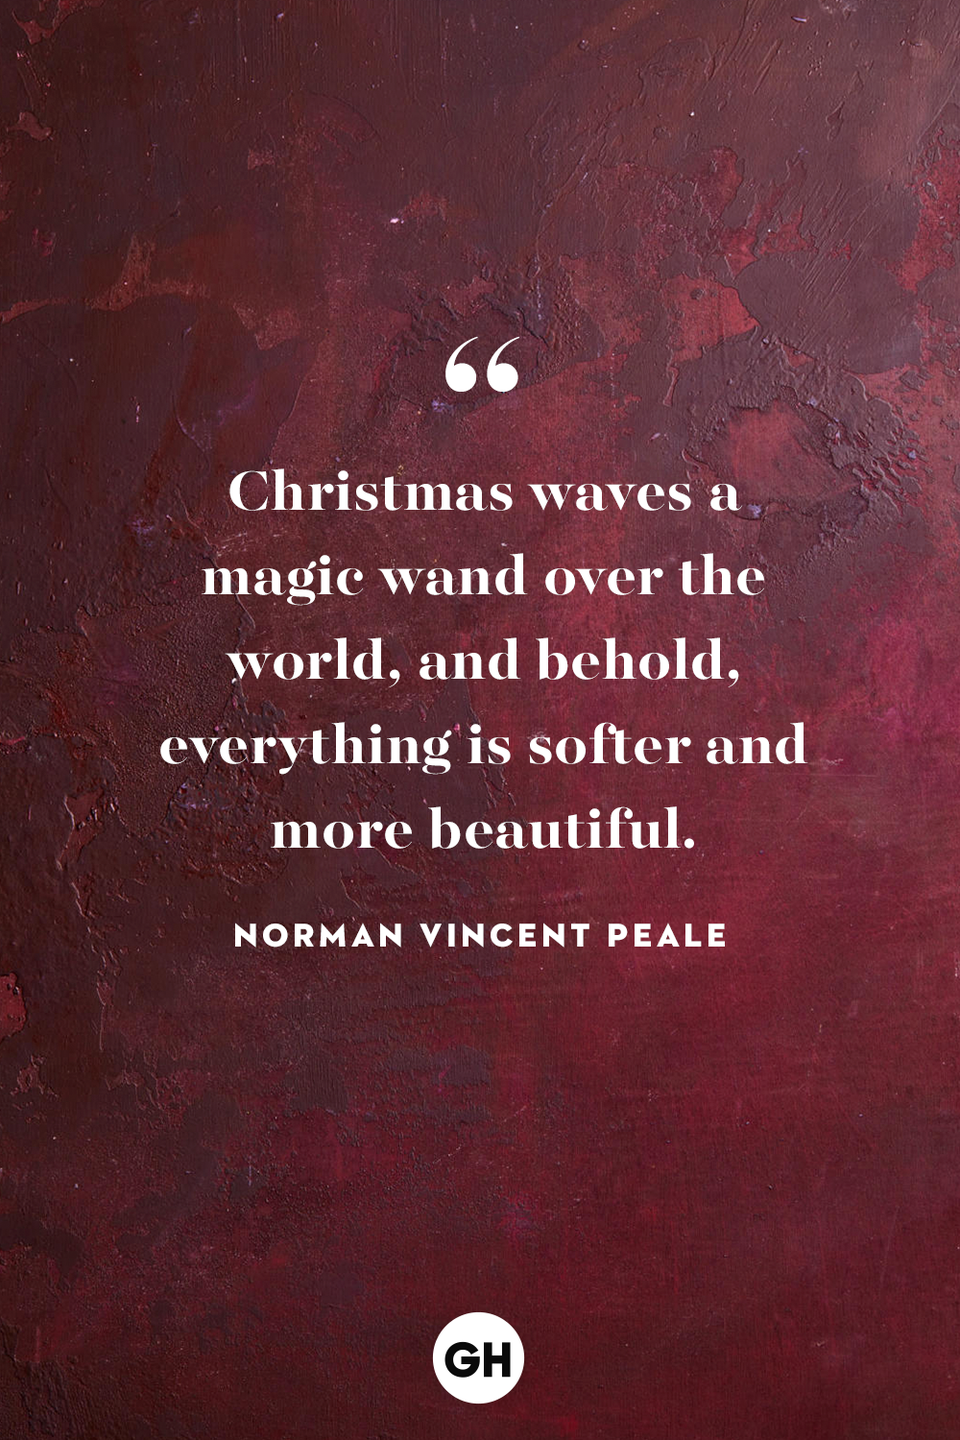 <p>Christmas waves a magic wand over the world, and behold, everything is softer and more beautiful. </p>